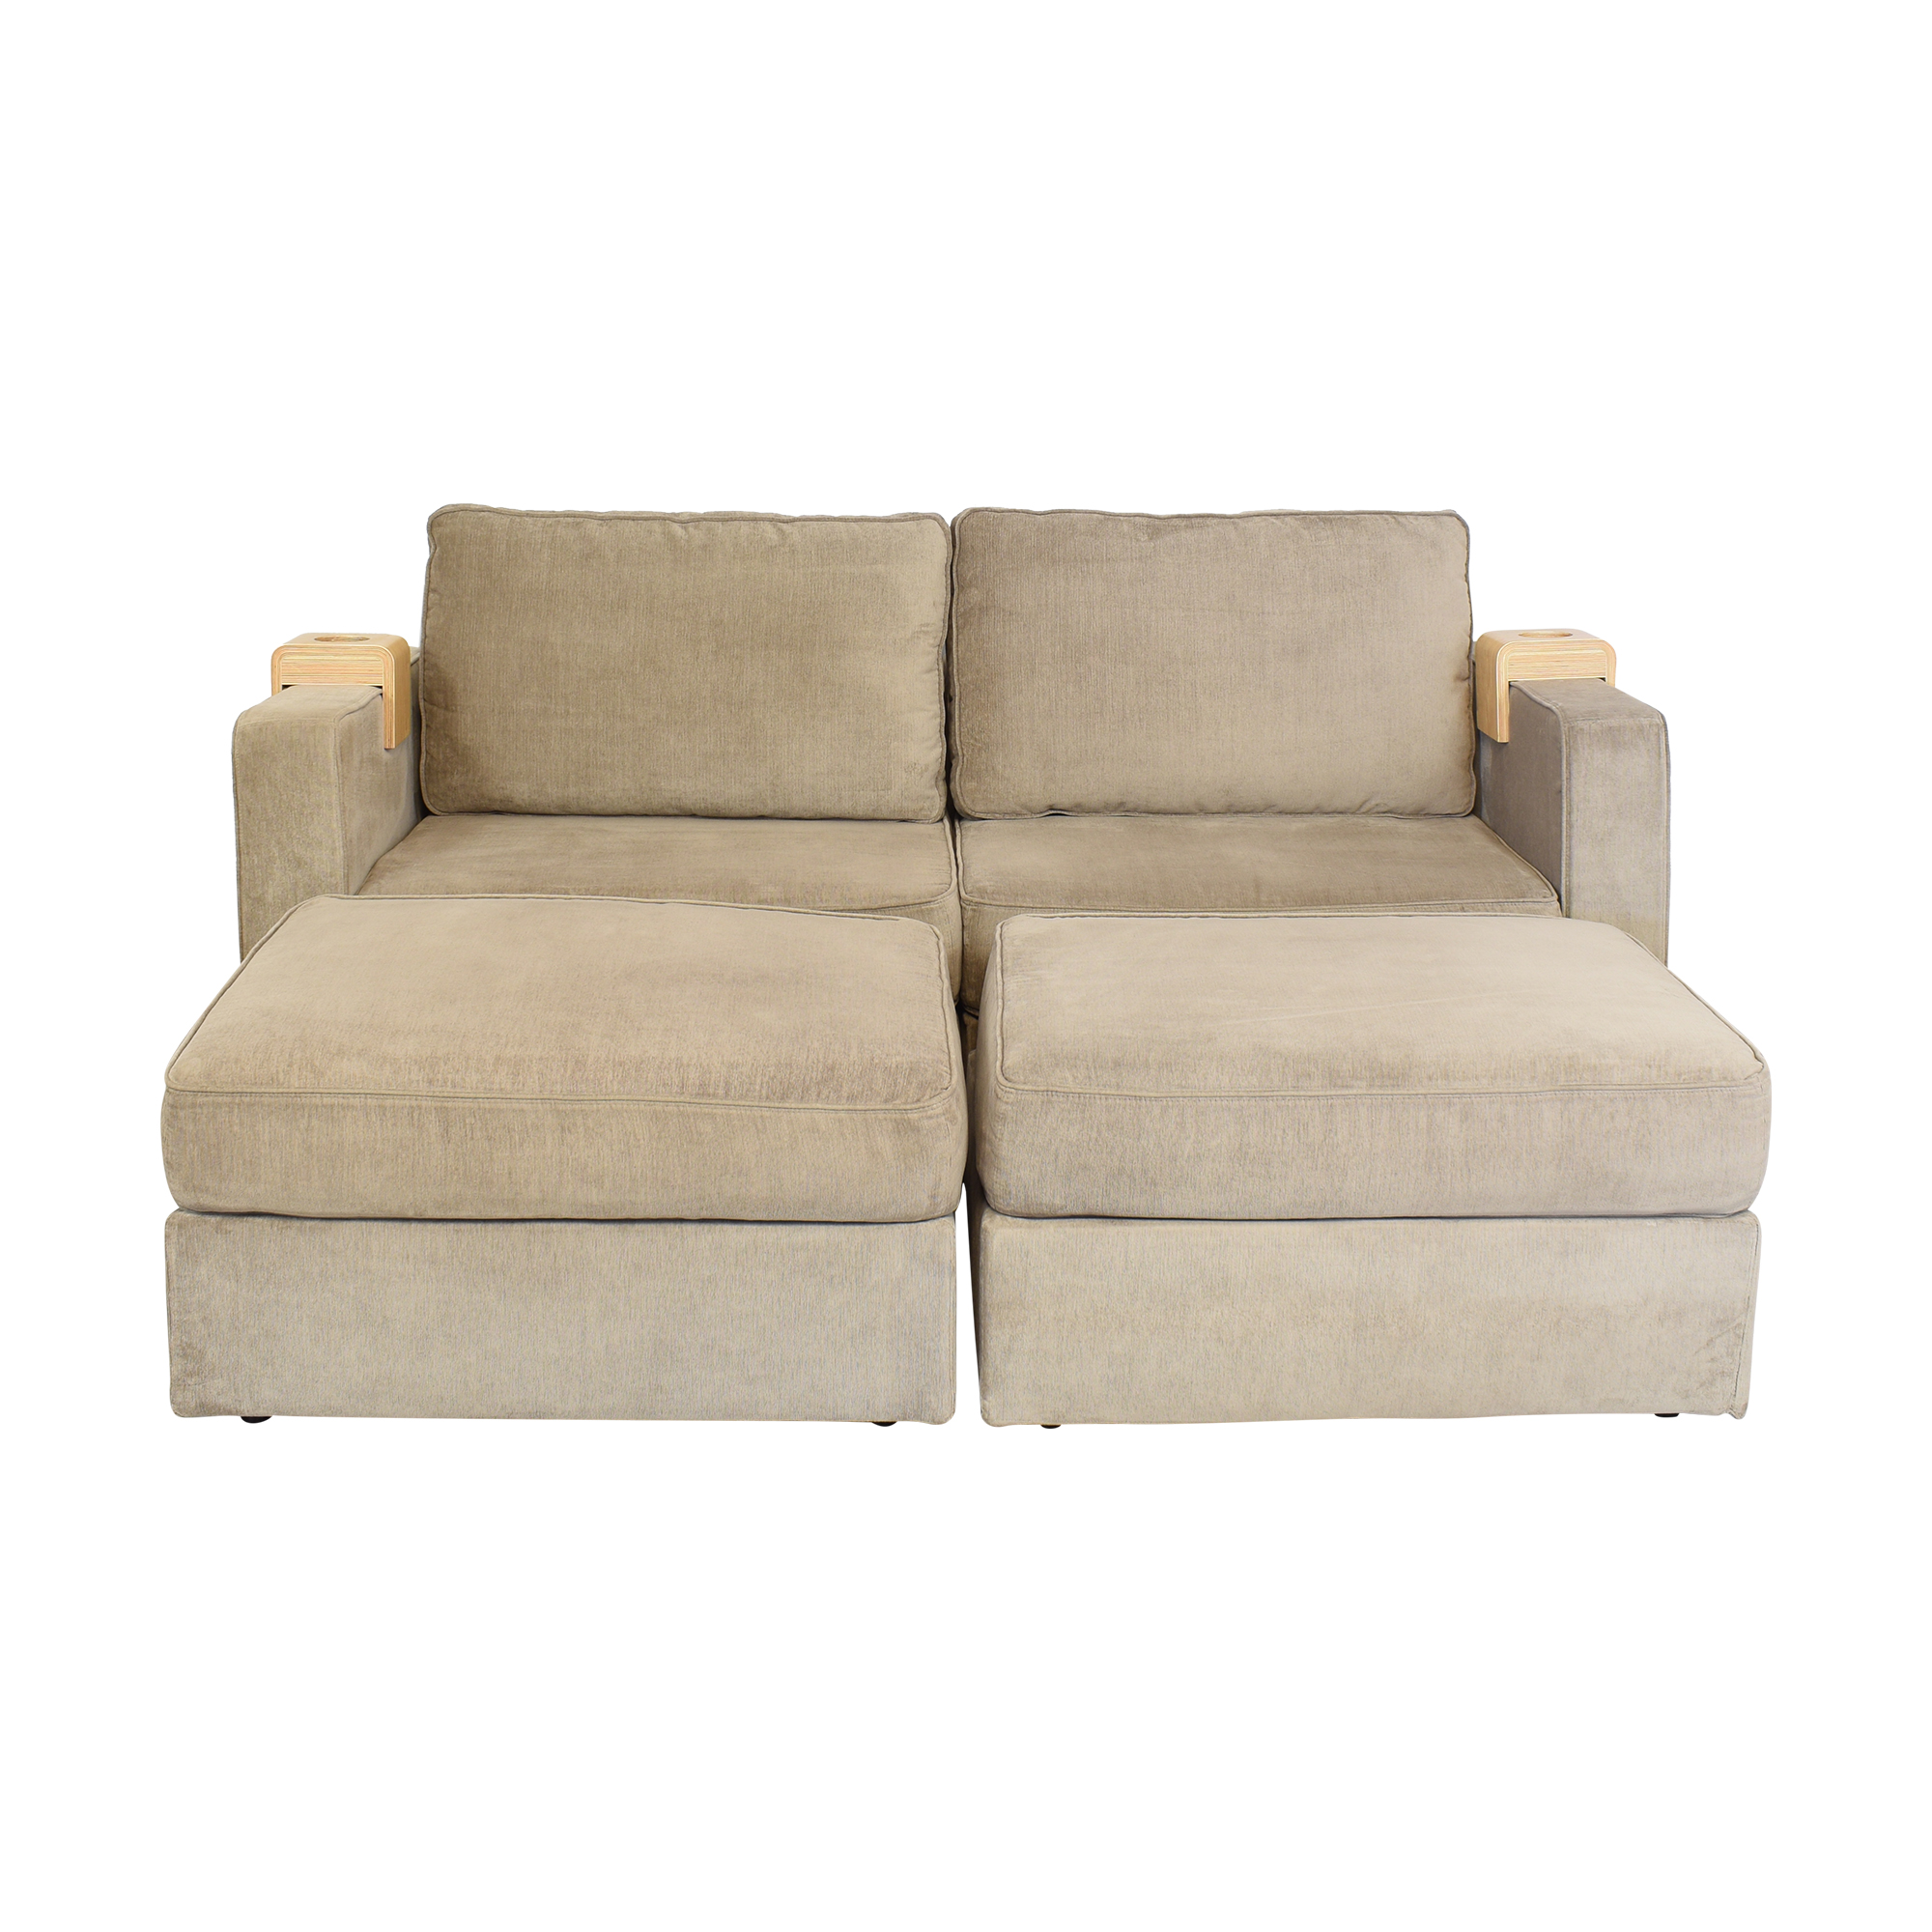 Lovesac Lovesac Sactional Sofa with Ottomans and Coasters Sofas